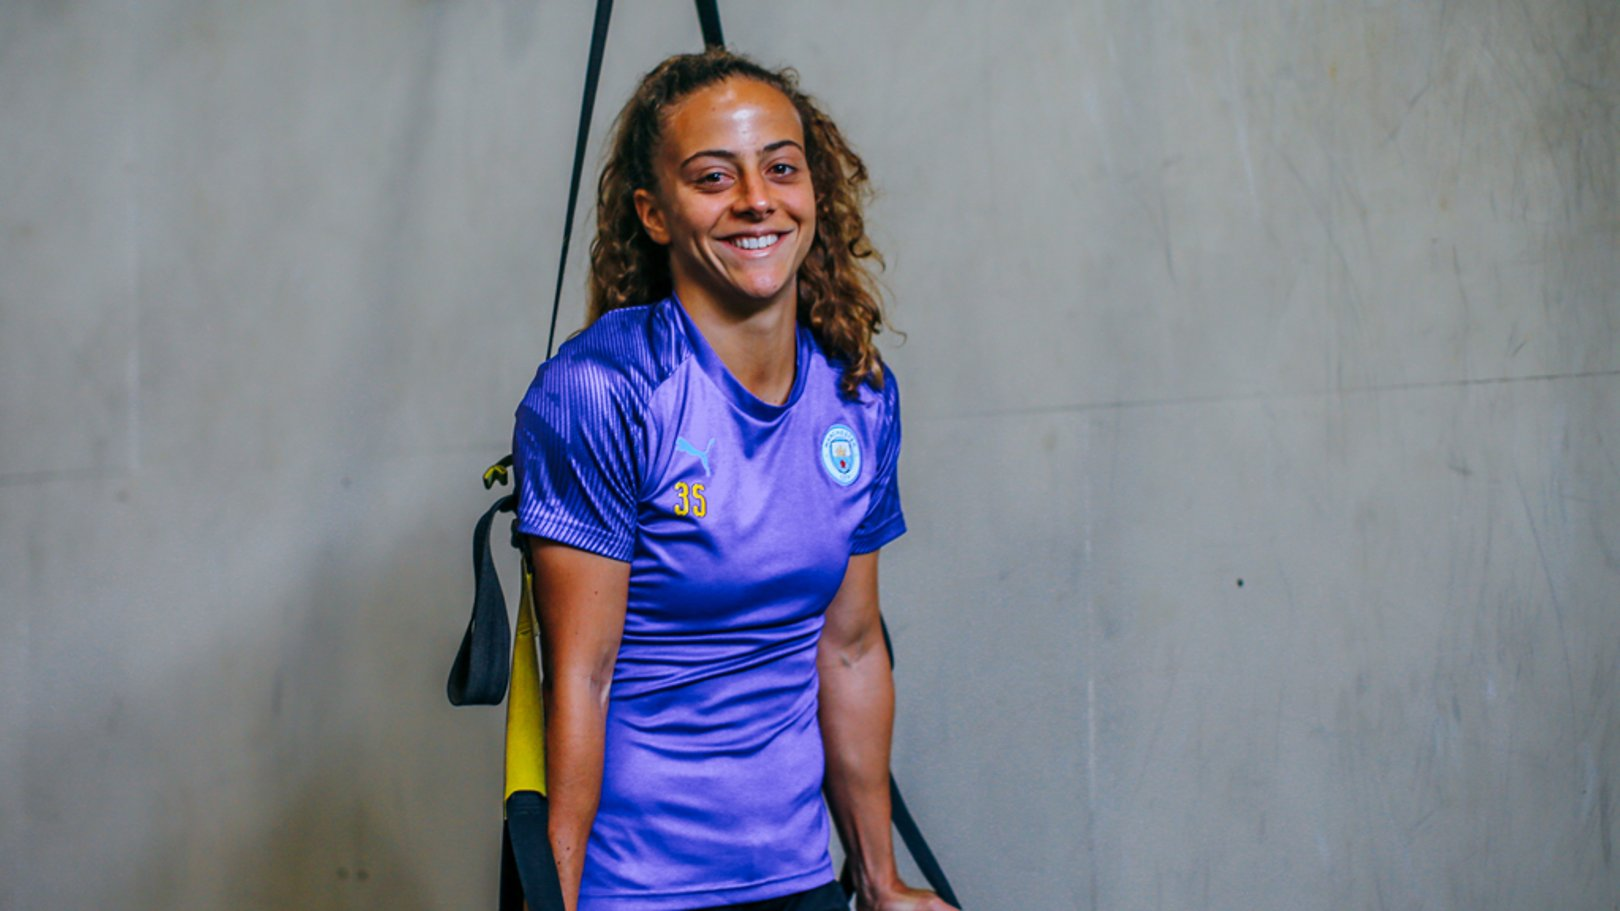 MERRY MATILDE: New recruit Matilde Fidalgo is settling in well on and off the pitch